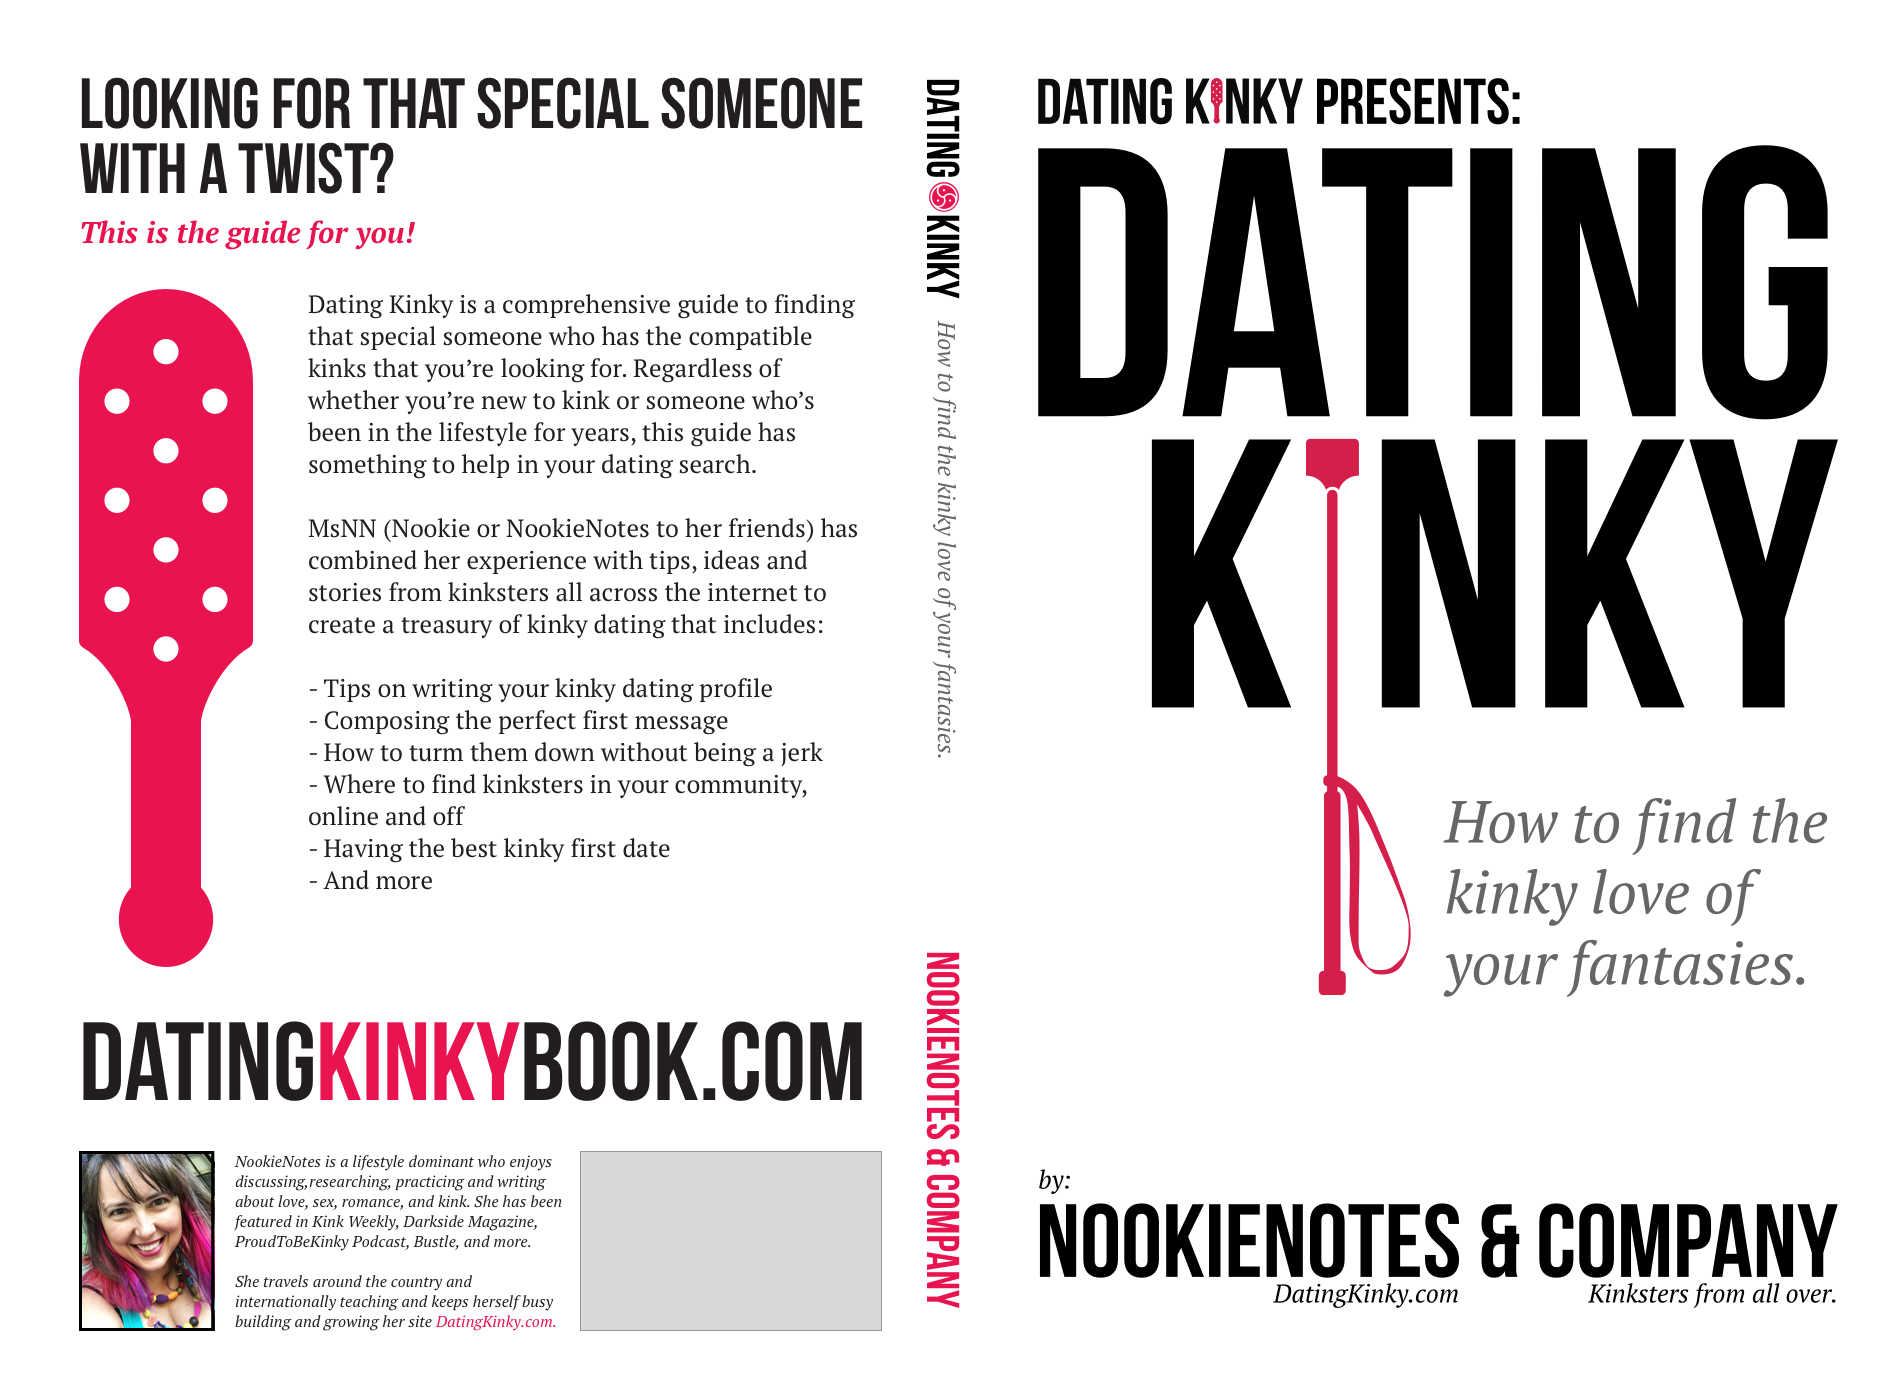 Dating Kinky: How to find the kinky love of your fantasies.